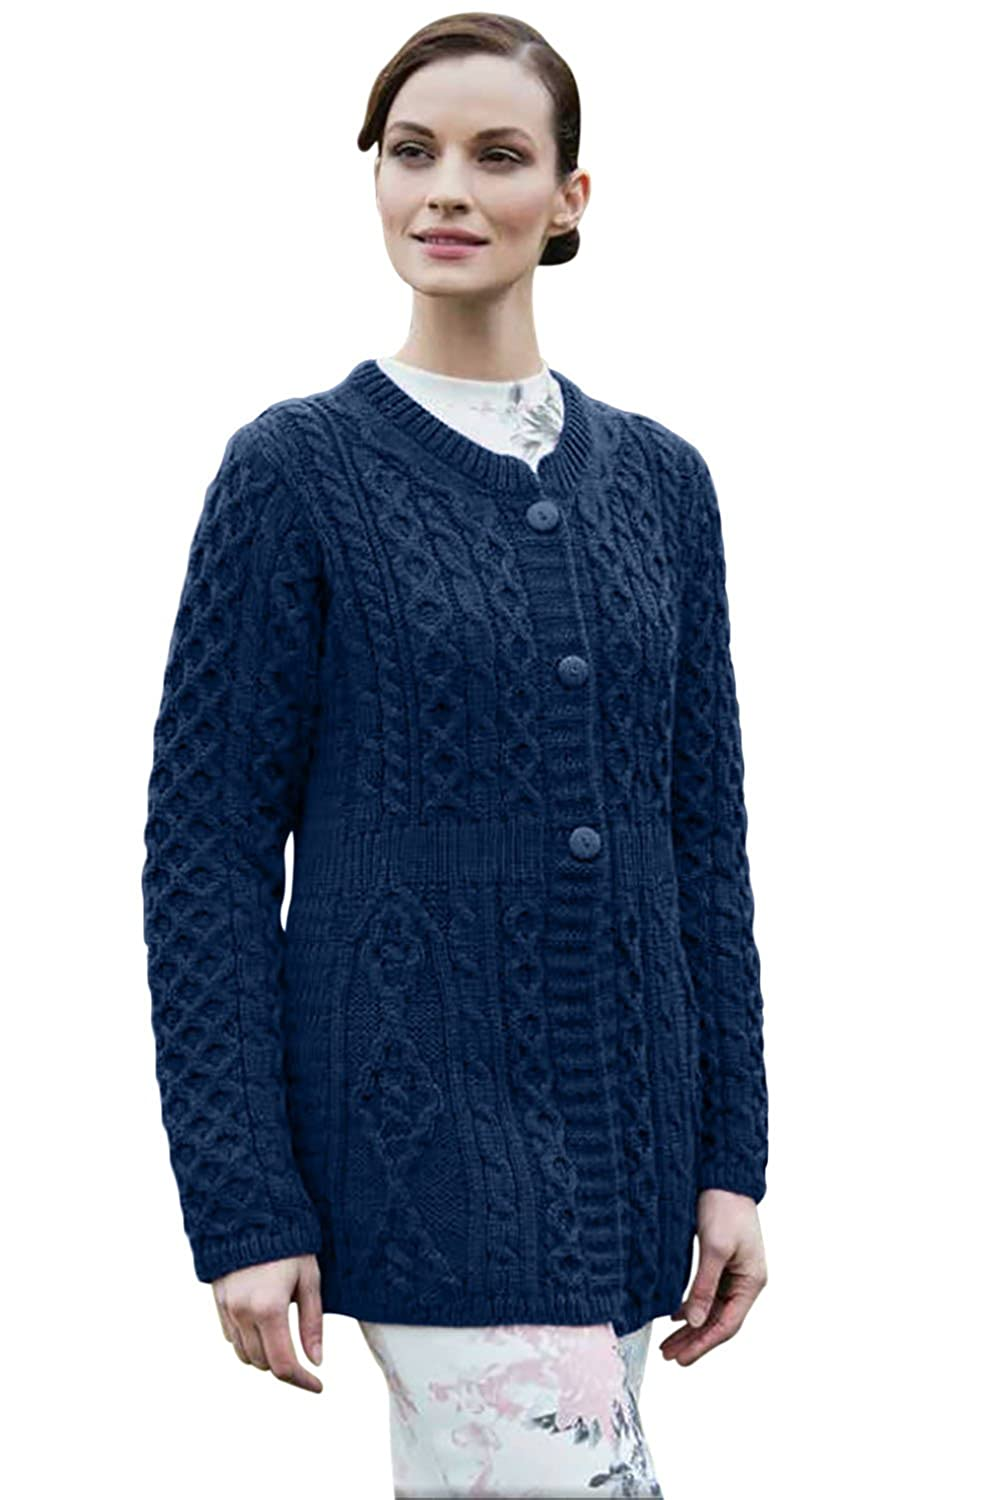 Ladies Colorful 1920s Sweaters and Cardigans History 100% Irish Merino Wool Ladies A Line Aran Sweater by Carriag Donn $94.19 AT vintagedancer.com